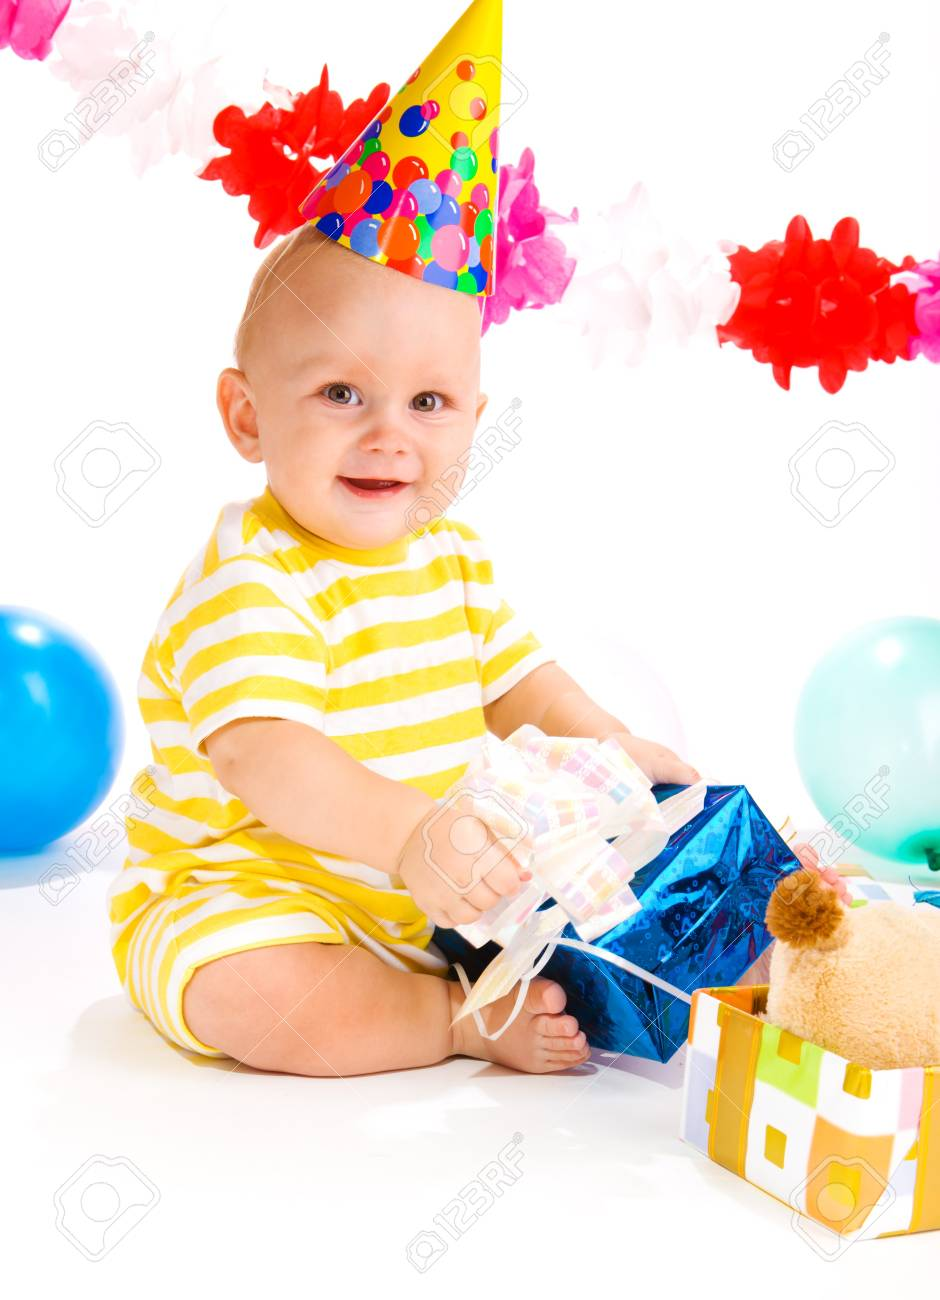 Baby in a party hat happy to receive a present Stock Photo - 7712747